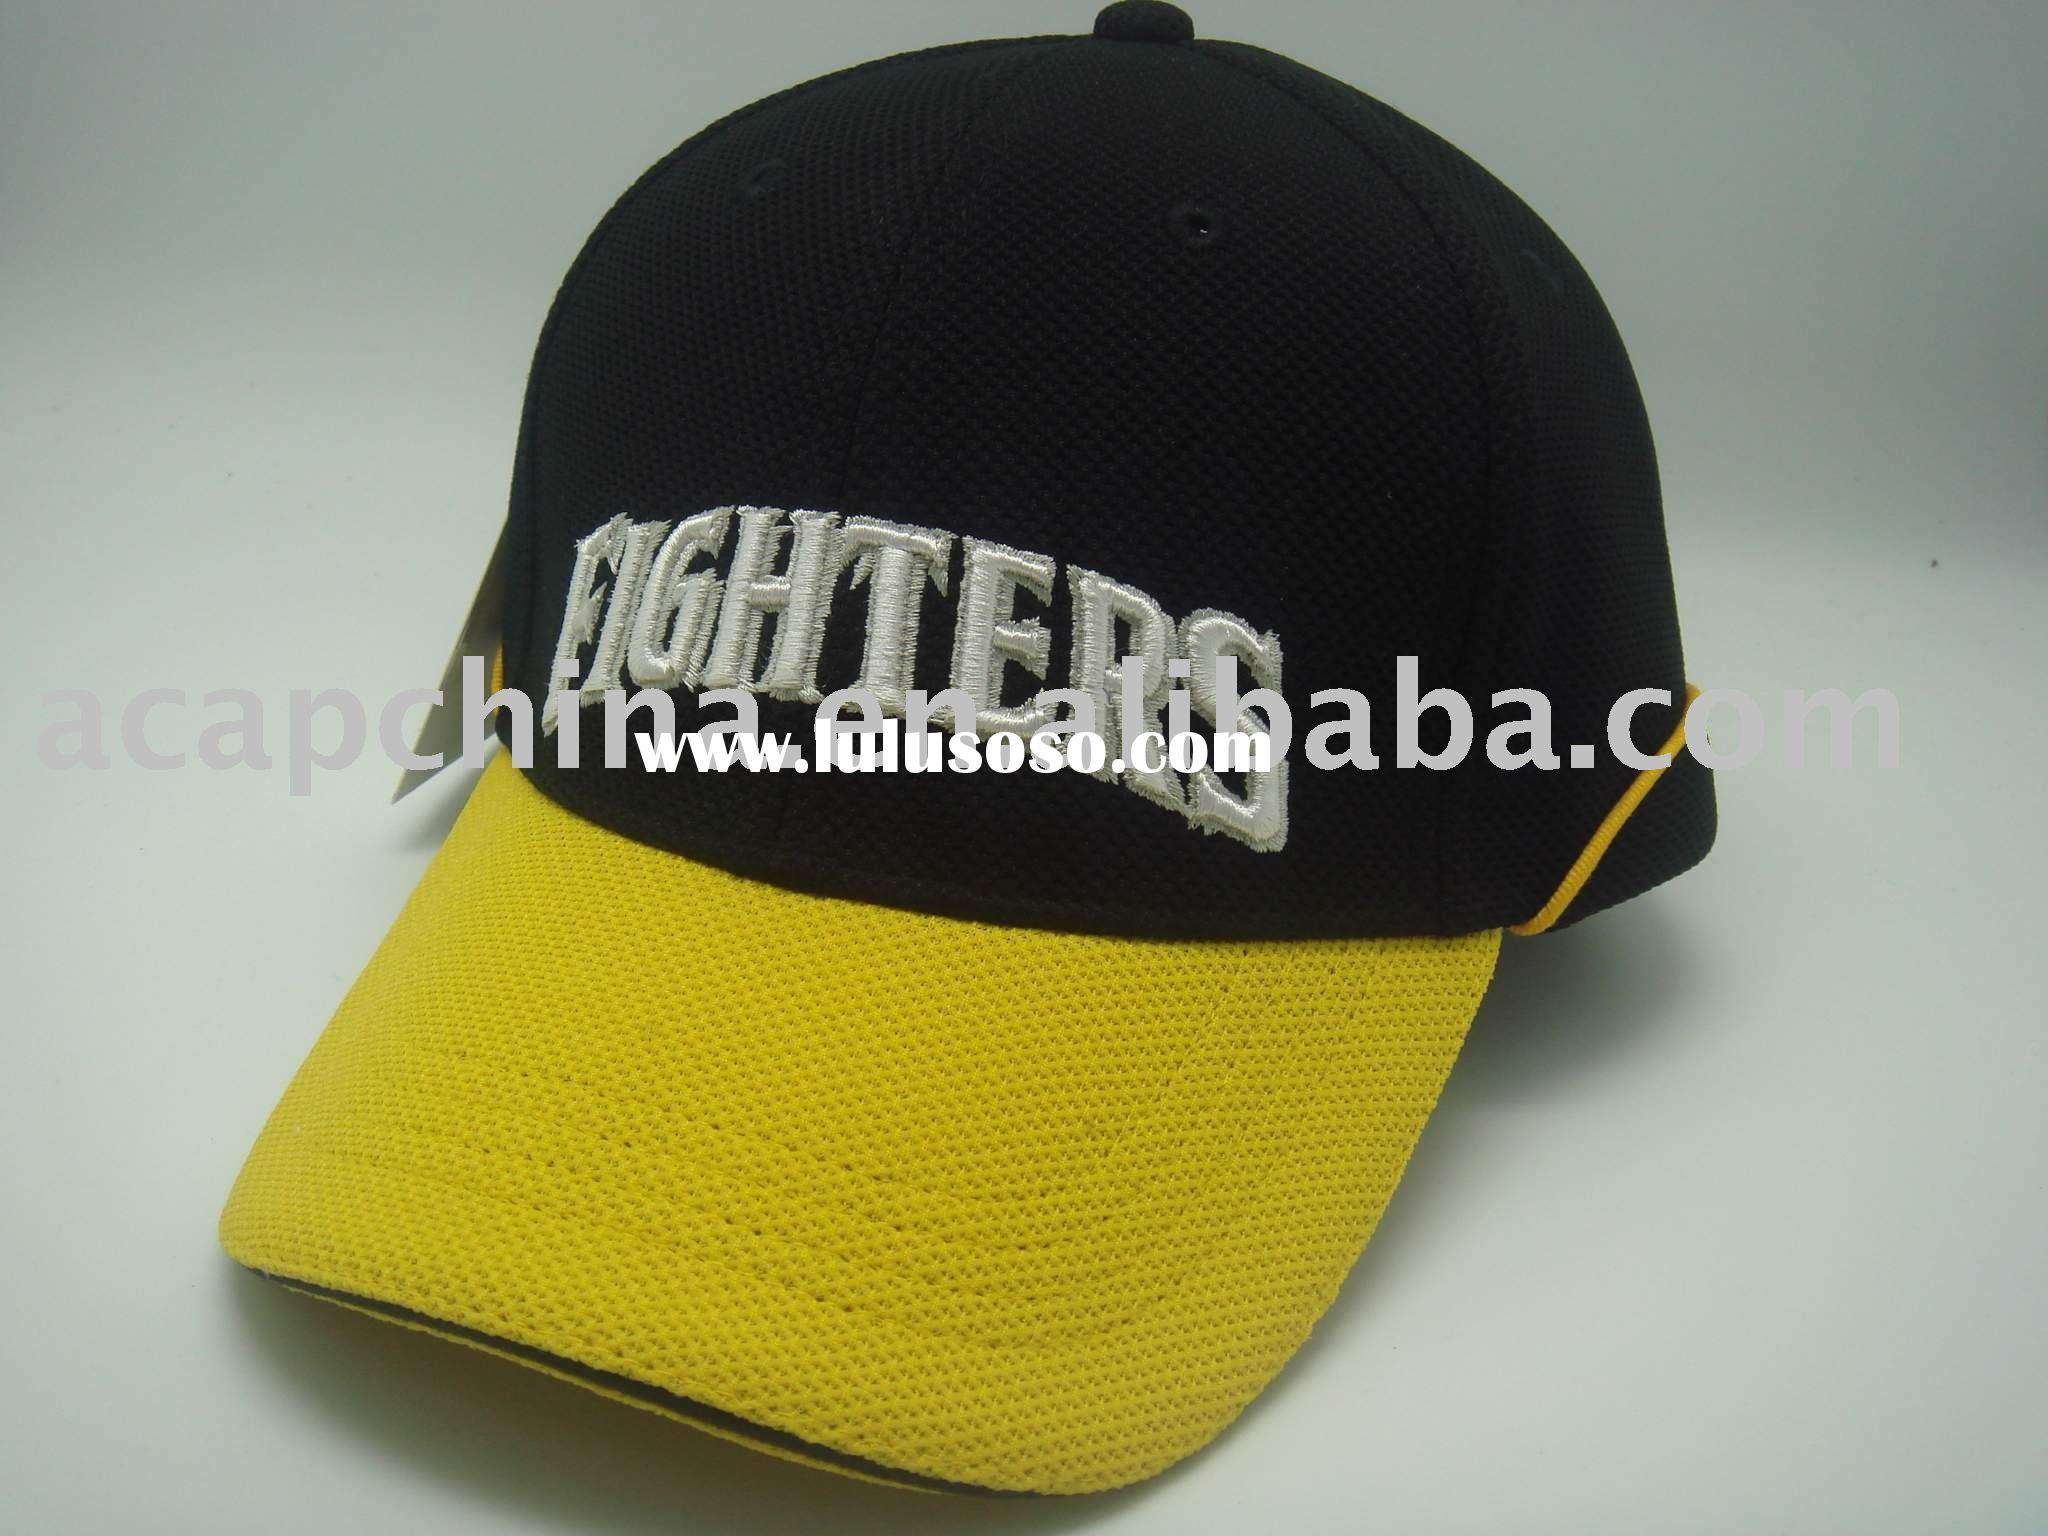 Baseball cap ( sports mesh cap with cool max fabric and embroidered logo )